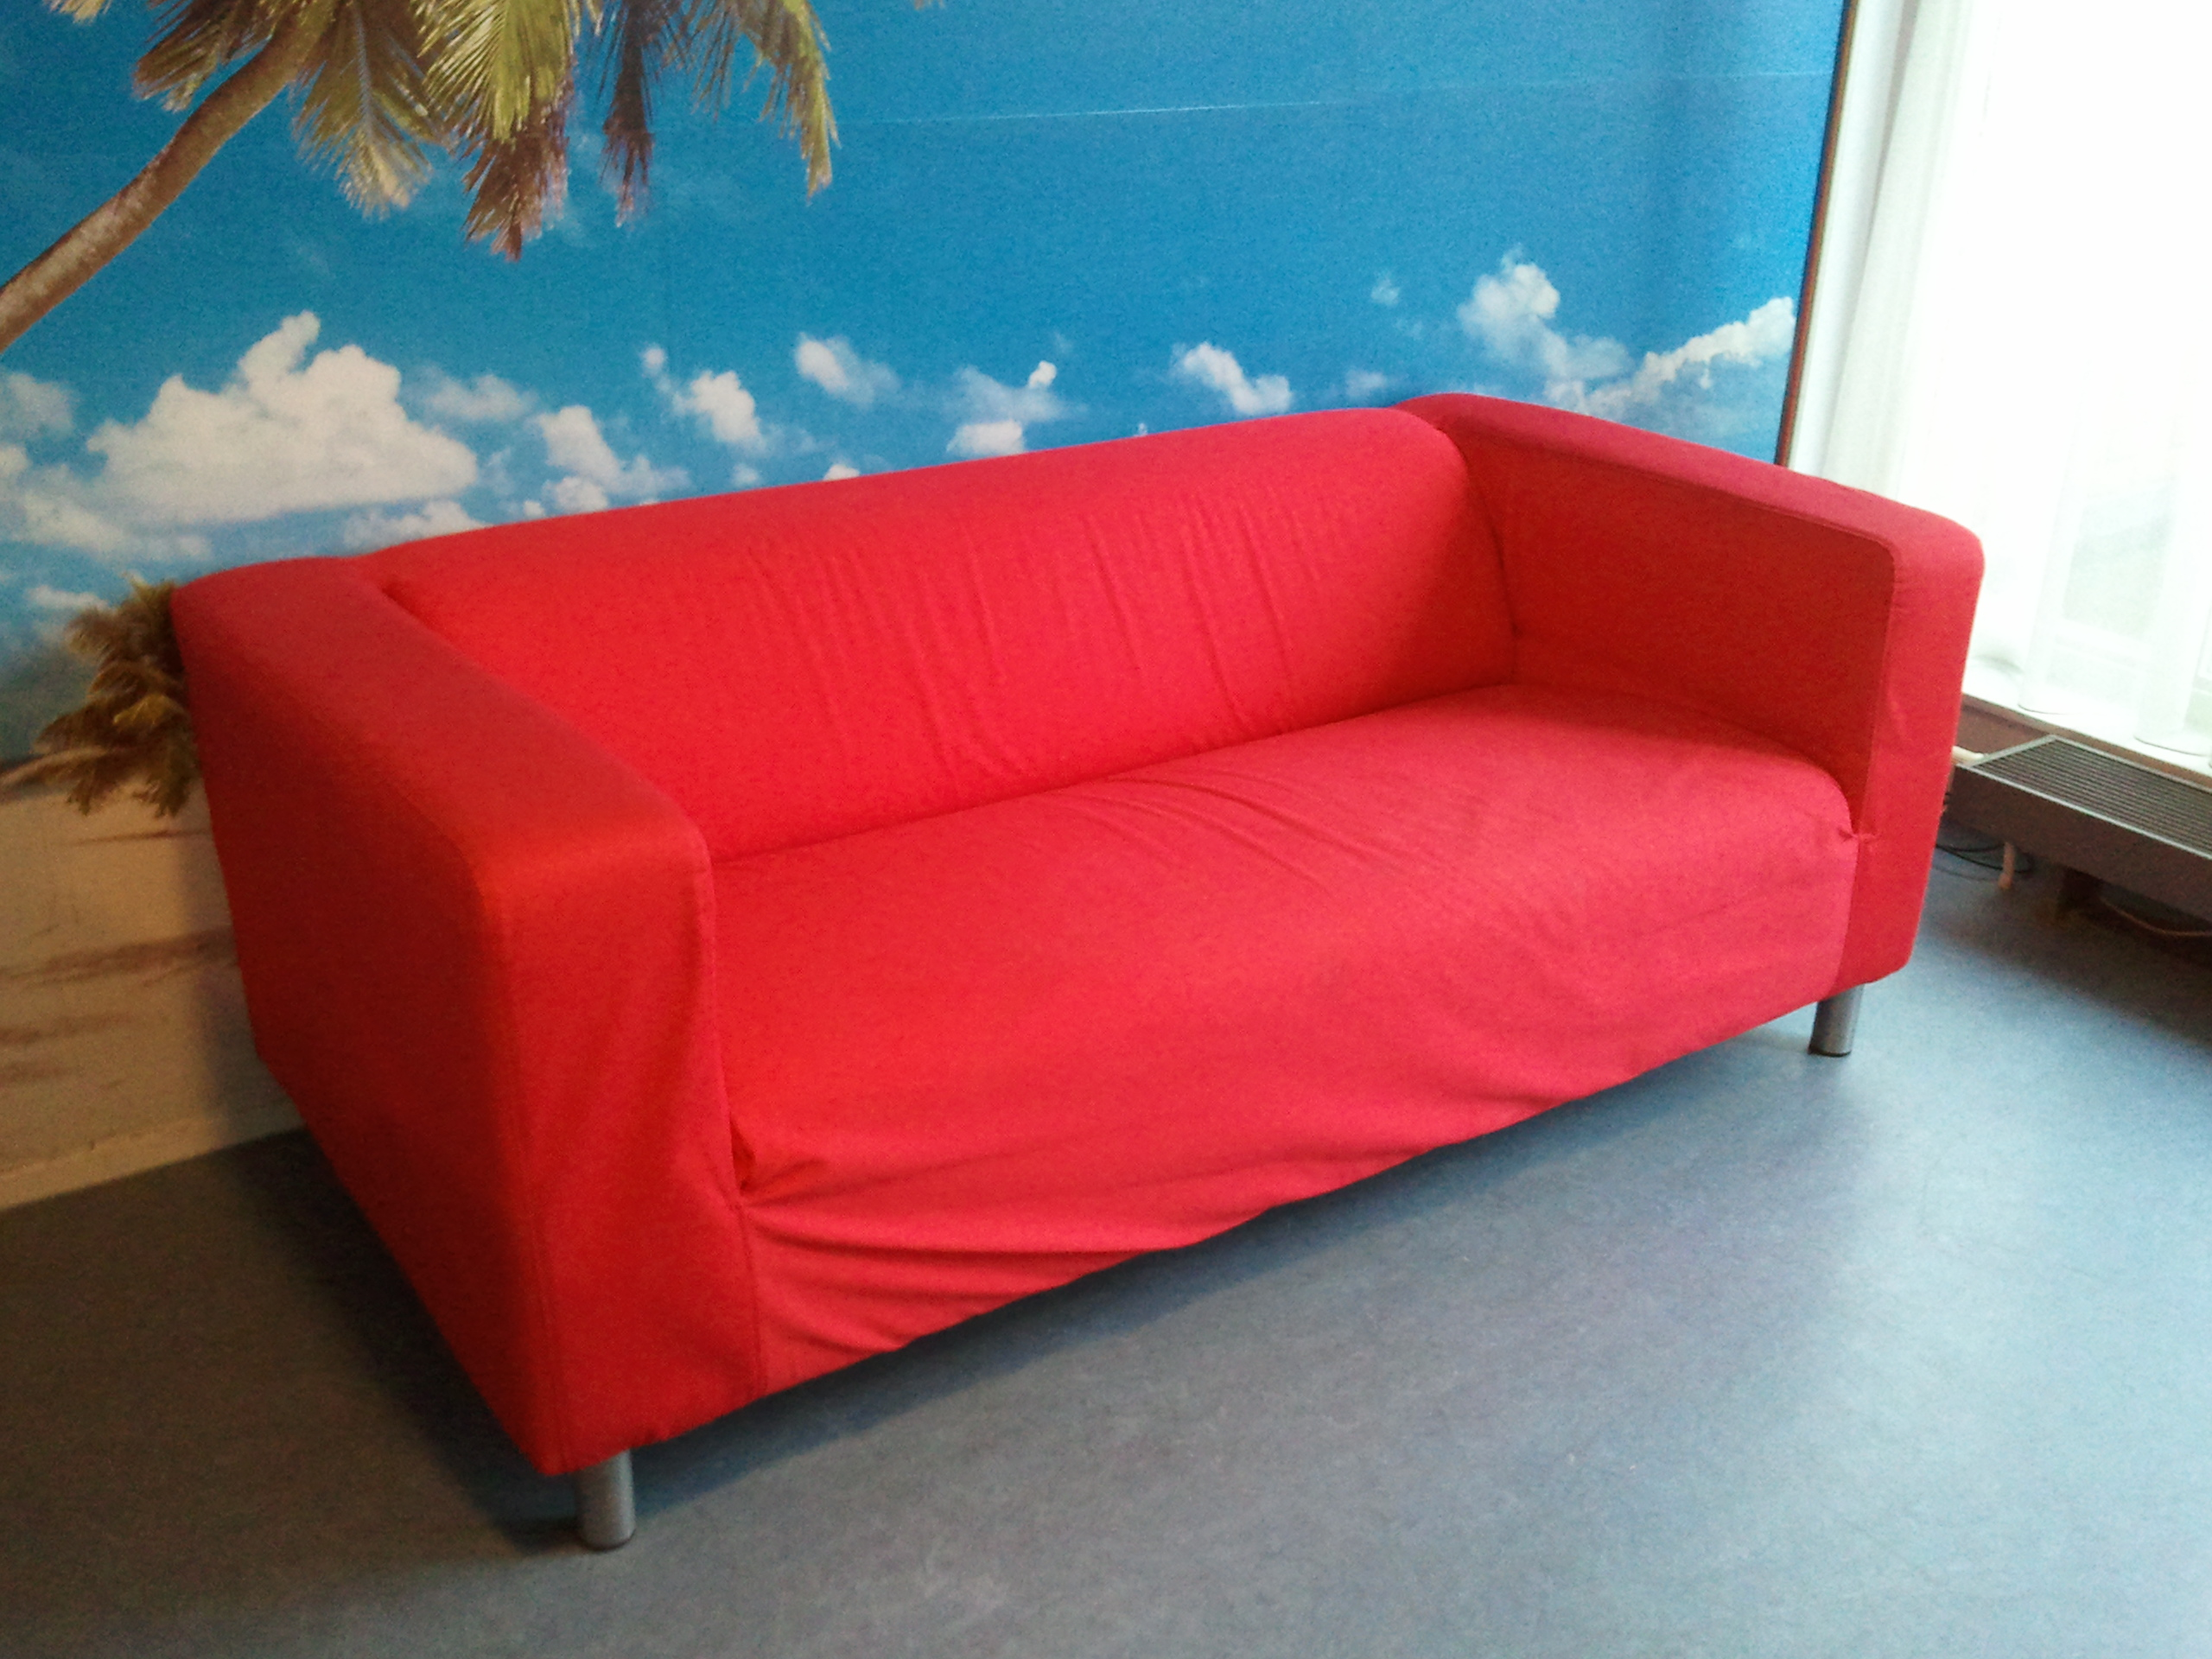 Bettsofa Ikea Klippan Sofa Wikipedia